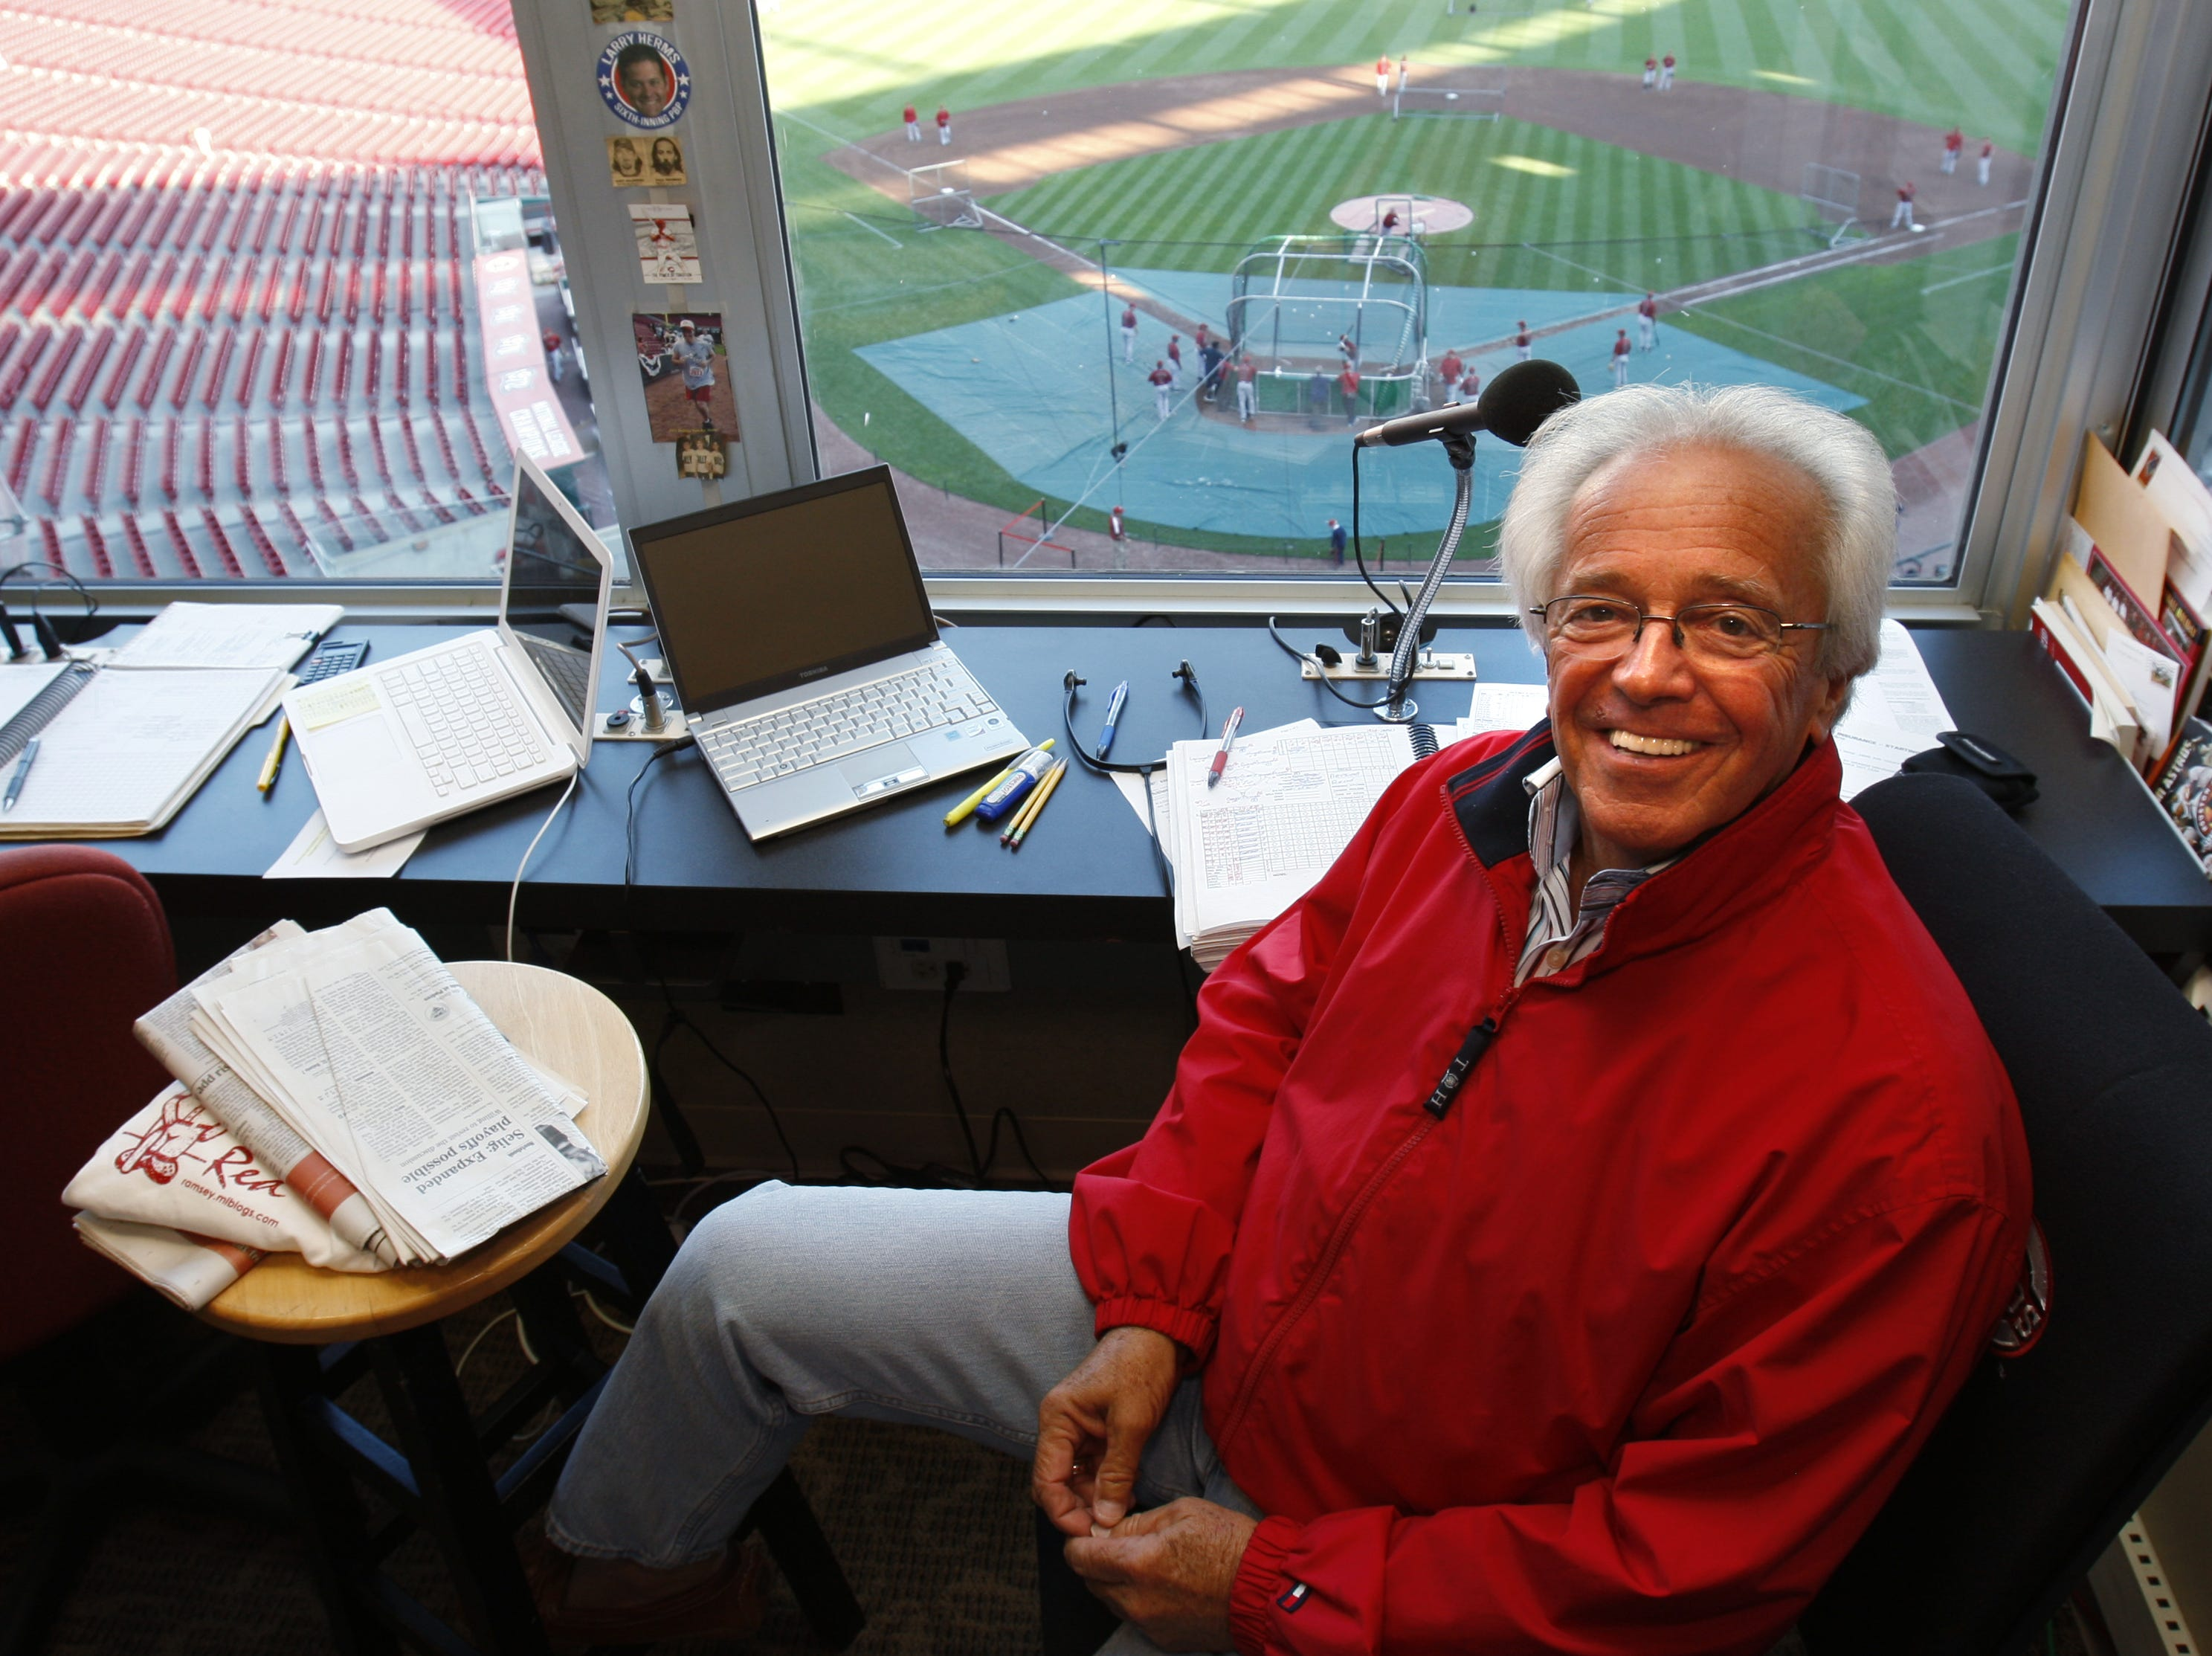 REDS ASTROS. SPORTS. SEPTEMBER 29,2010. Cincinnati Reds radio broadcaster Marty Brennaman prepares for the game in his broadcast booth before the start of their game against the Houston Astros at Great American Ball Park in Cincinnati, Ohio Wednesday September 29, 2010.